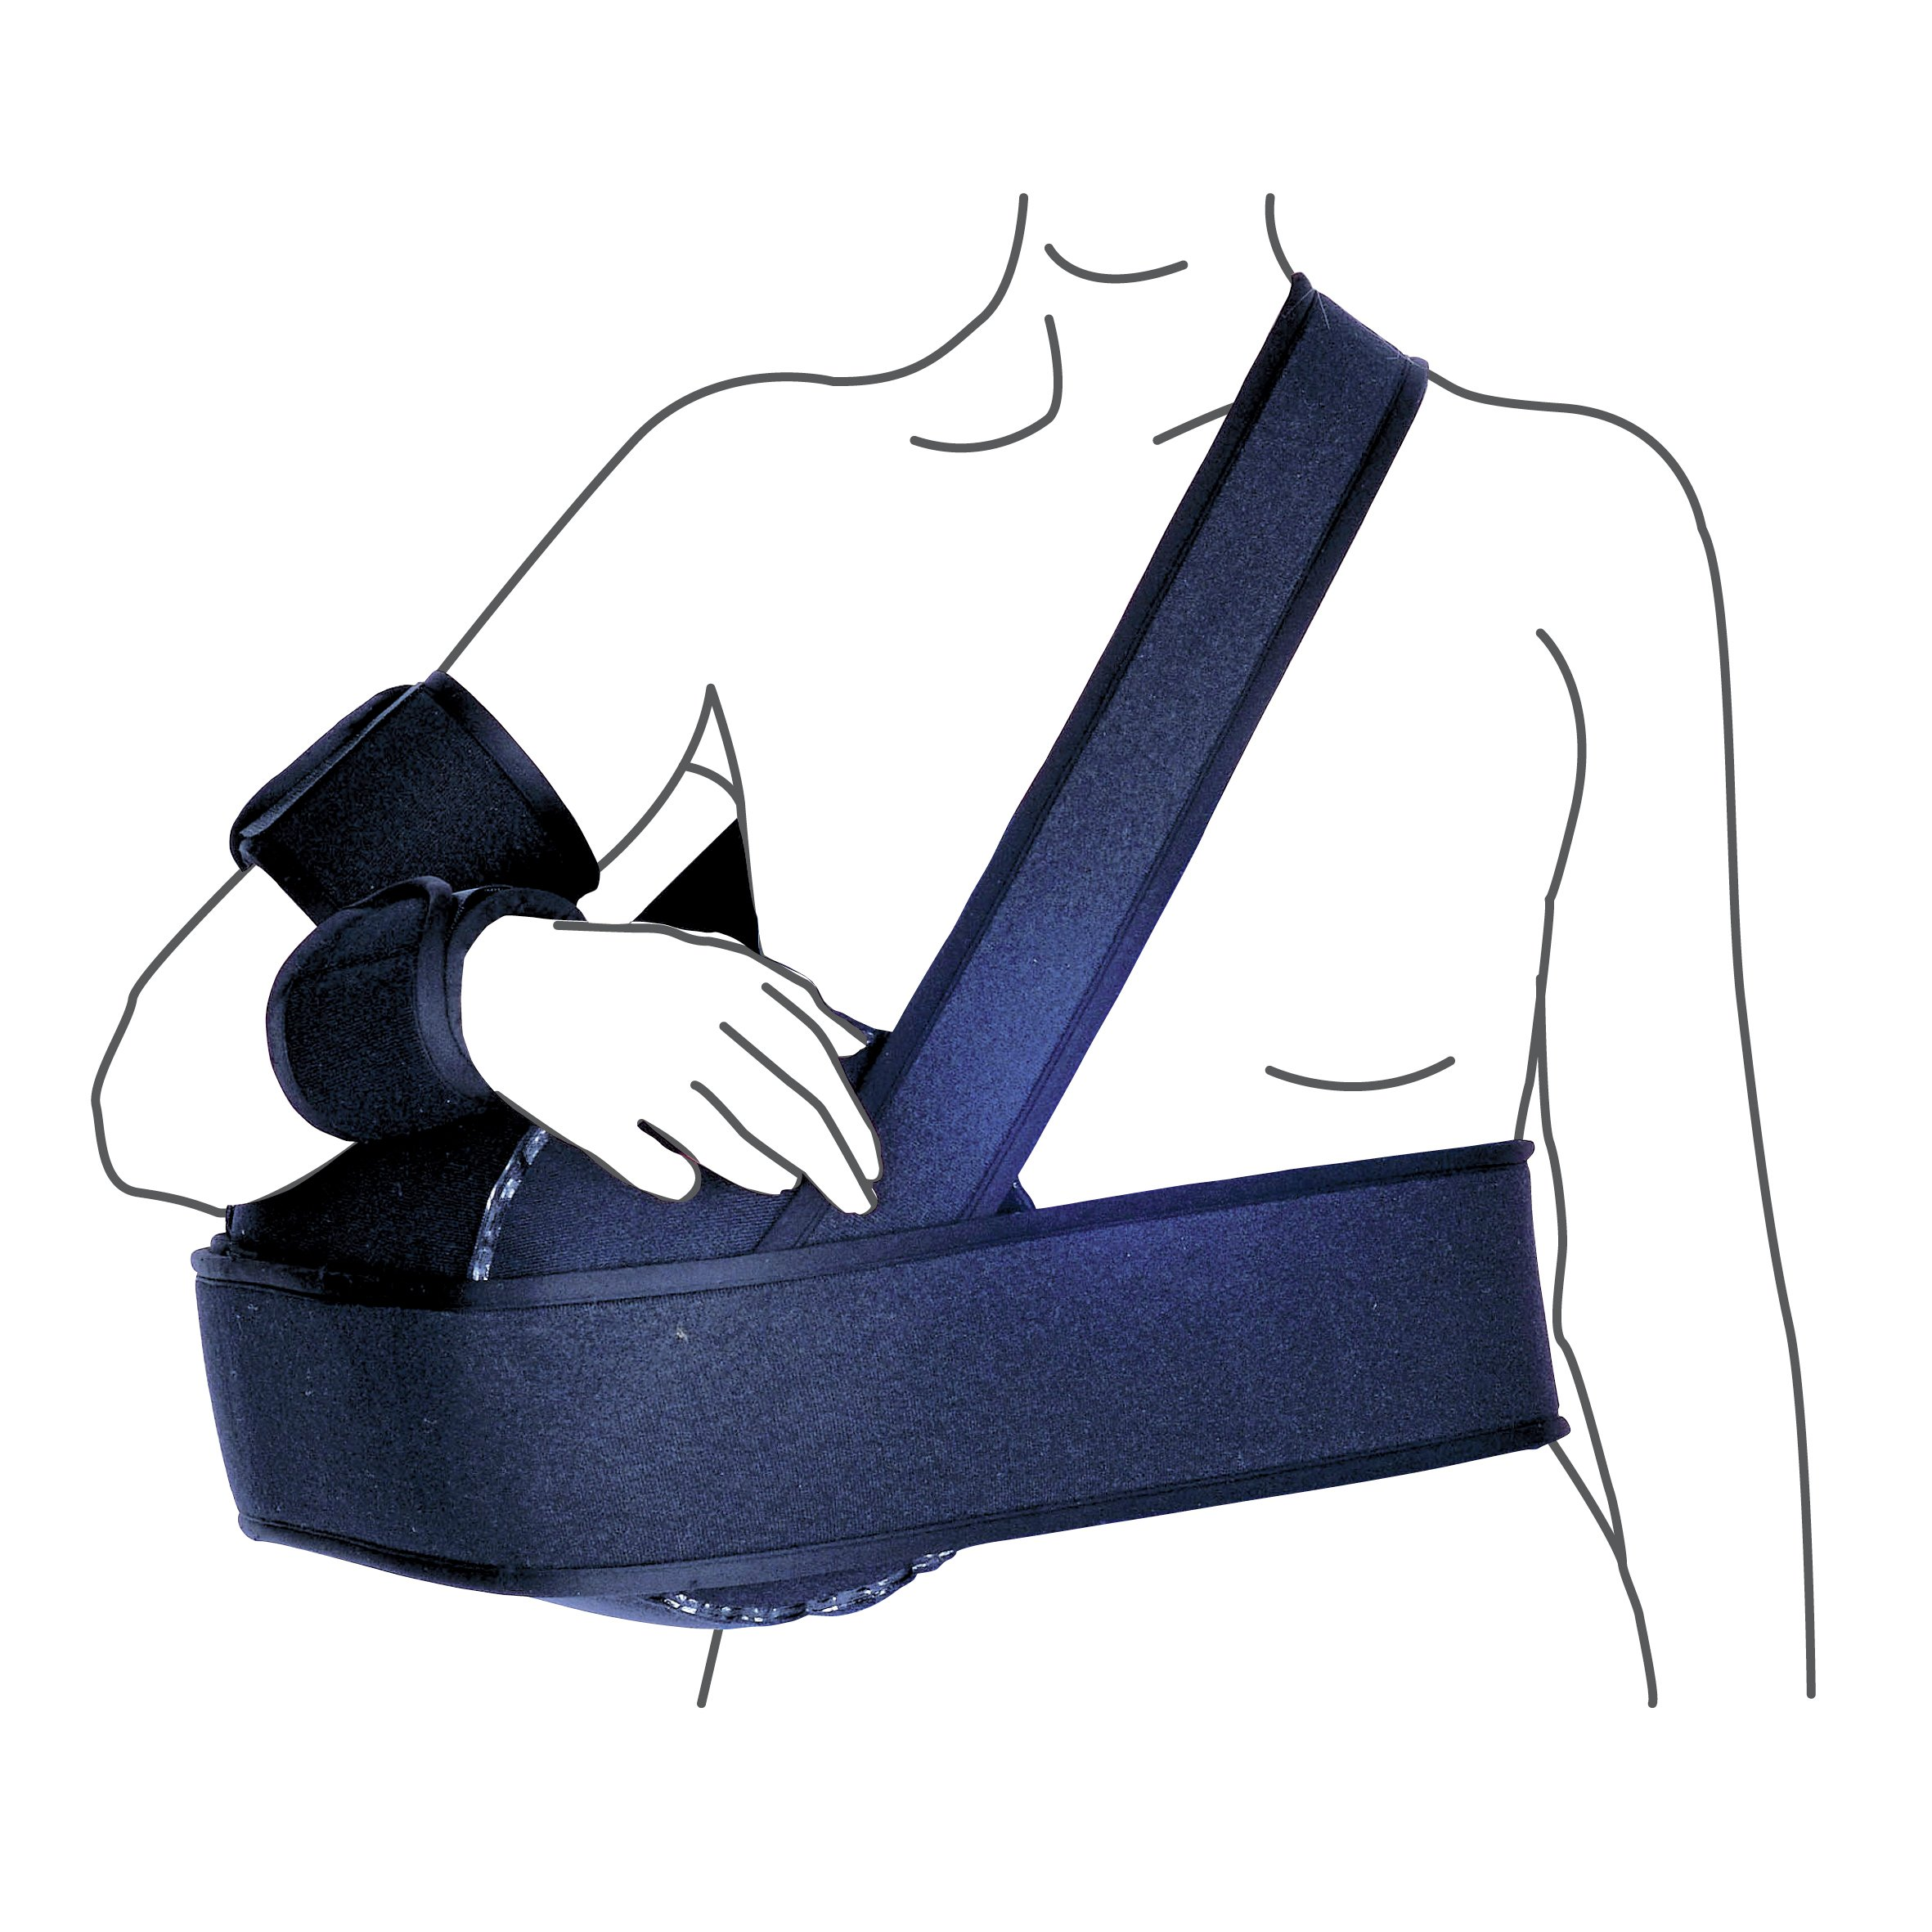 Neo-G Active Arm Sling with Air Pad by Neo-G